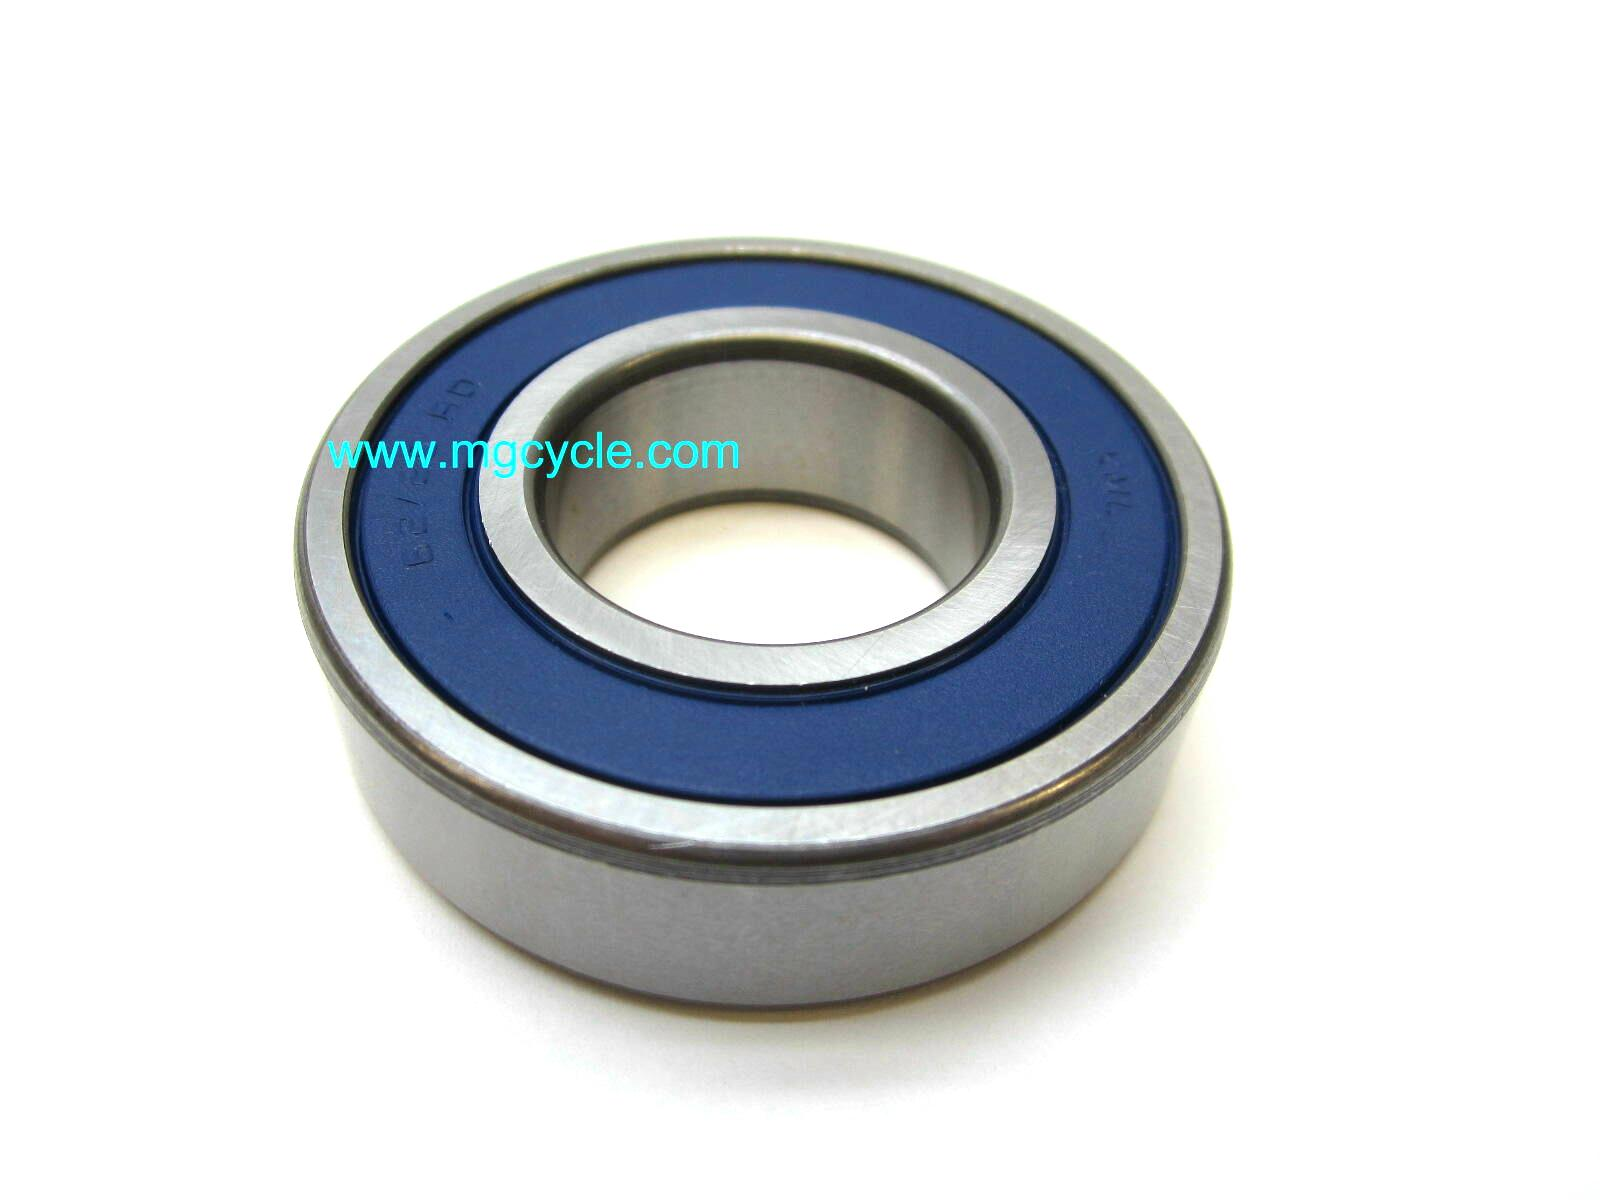 U-Joint carrier bearing for most 1976-2002, also CARC GU92204230